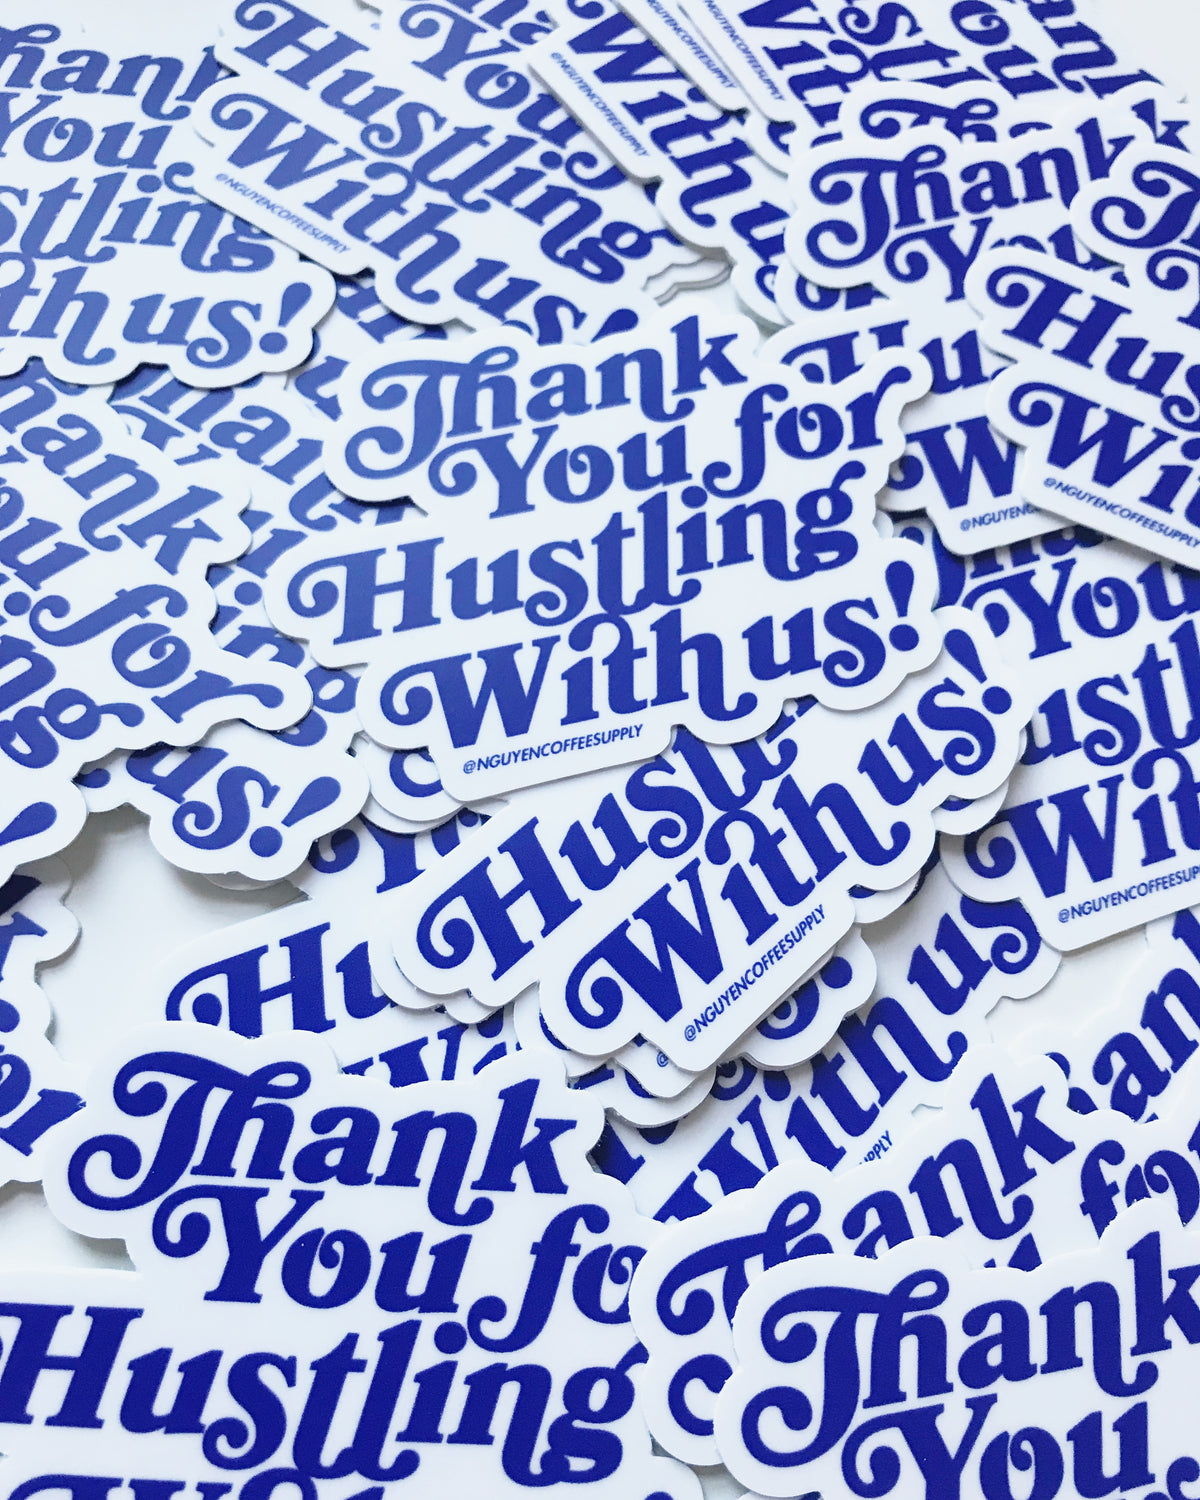 Nguyen Coffee Supply - Stickers - Thank you for hustling with us